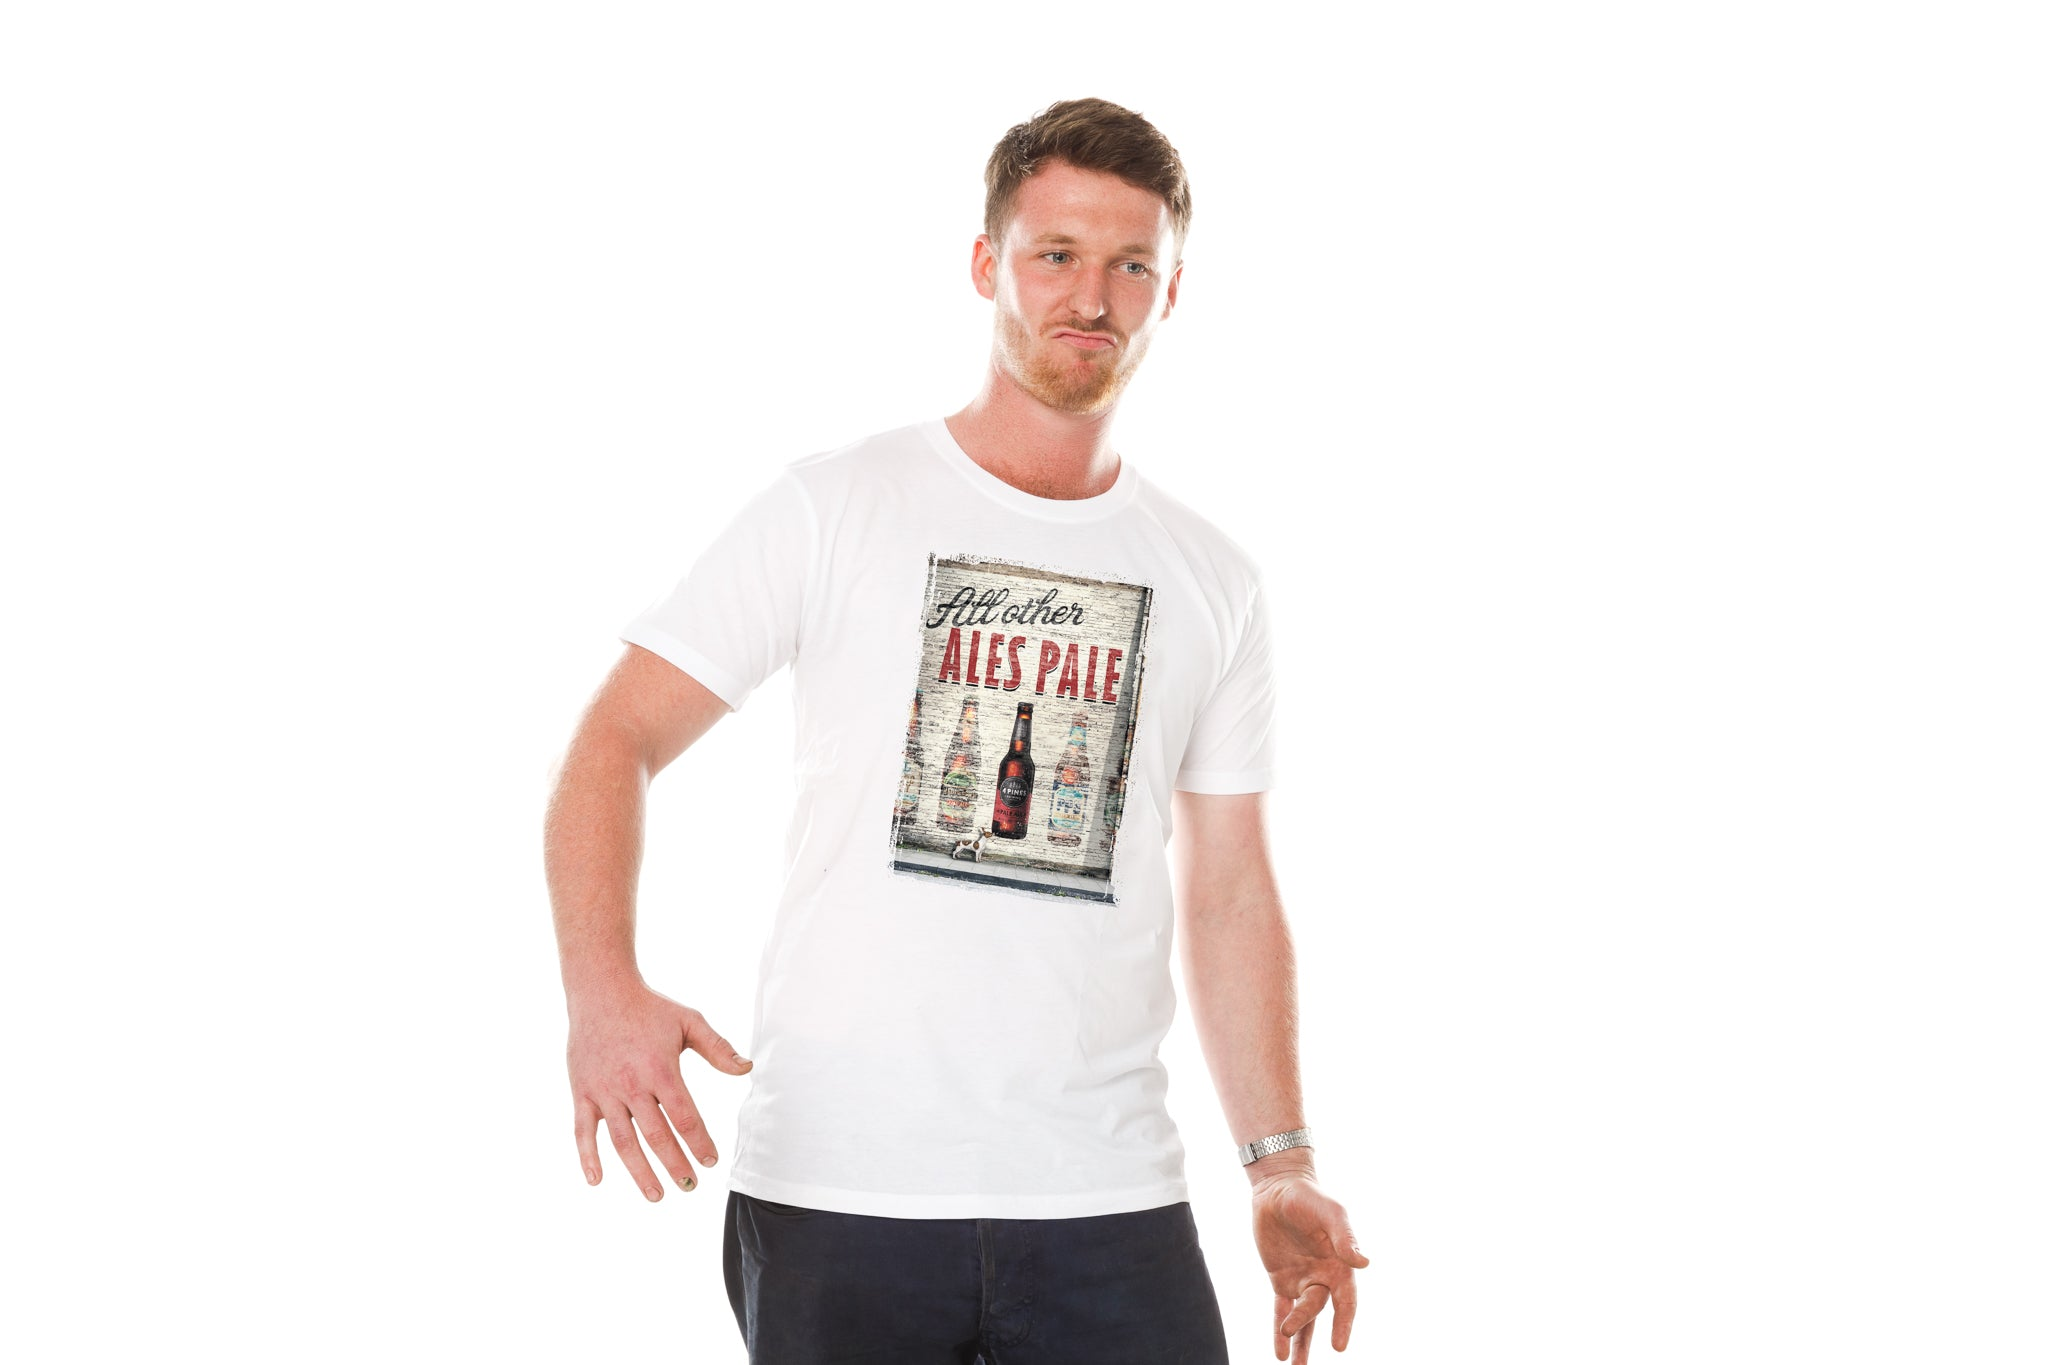 White Tee with All Other Ales Pale print